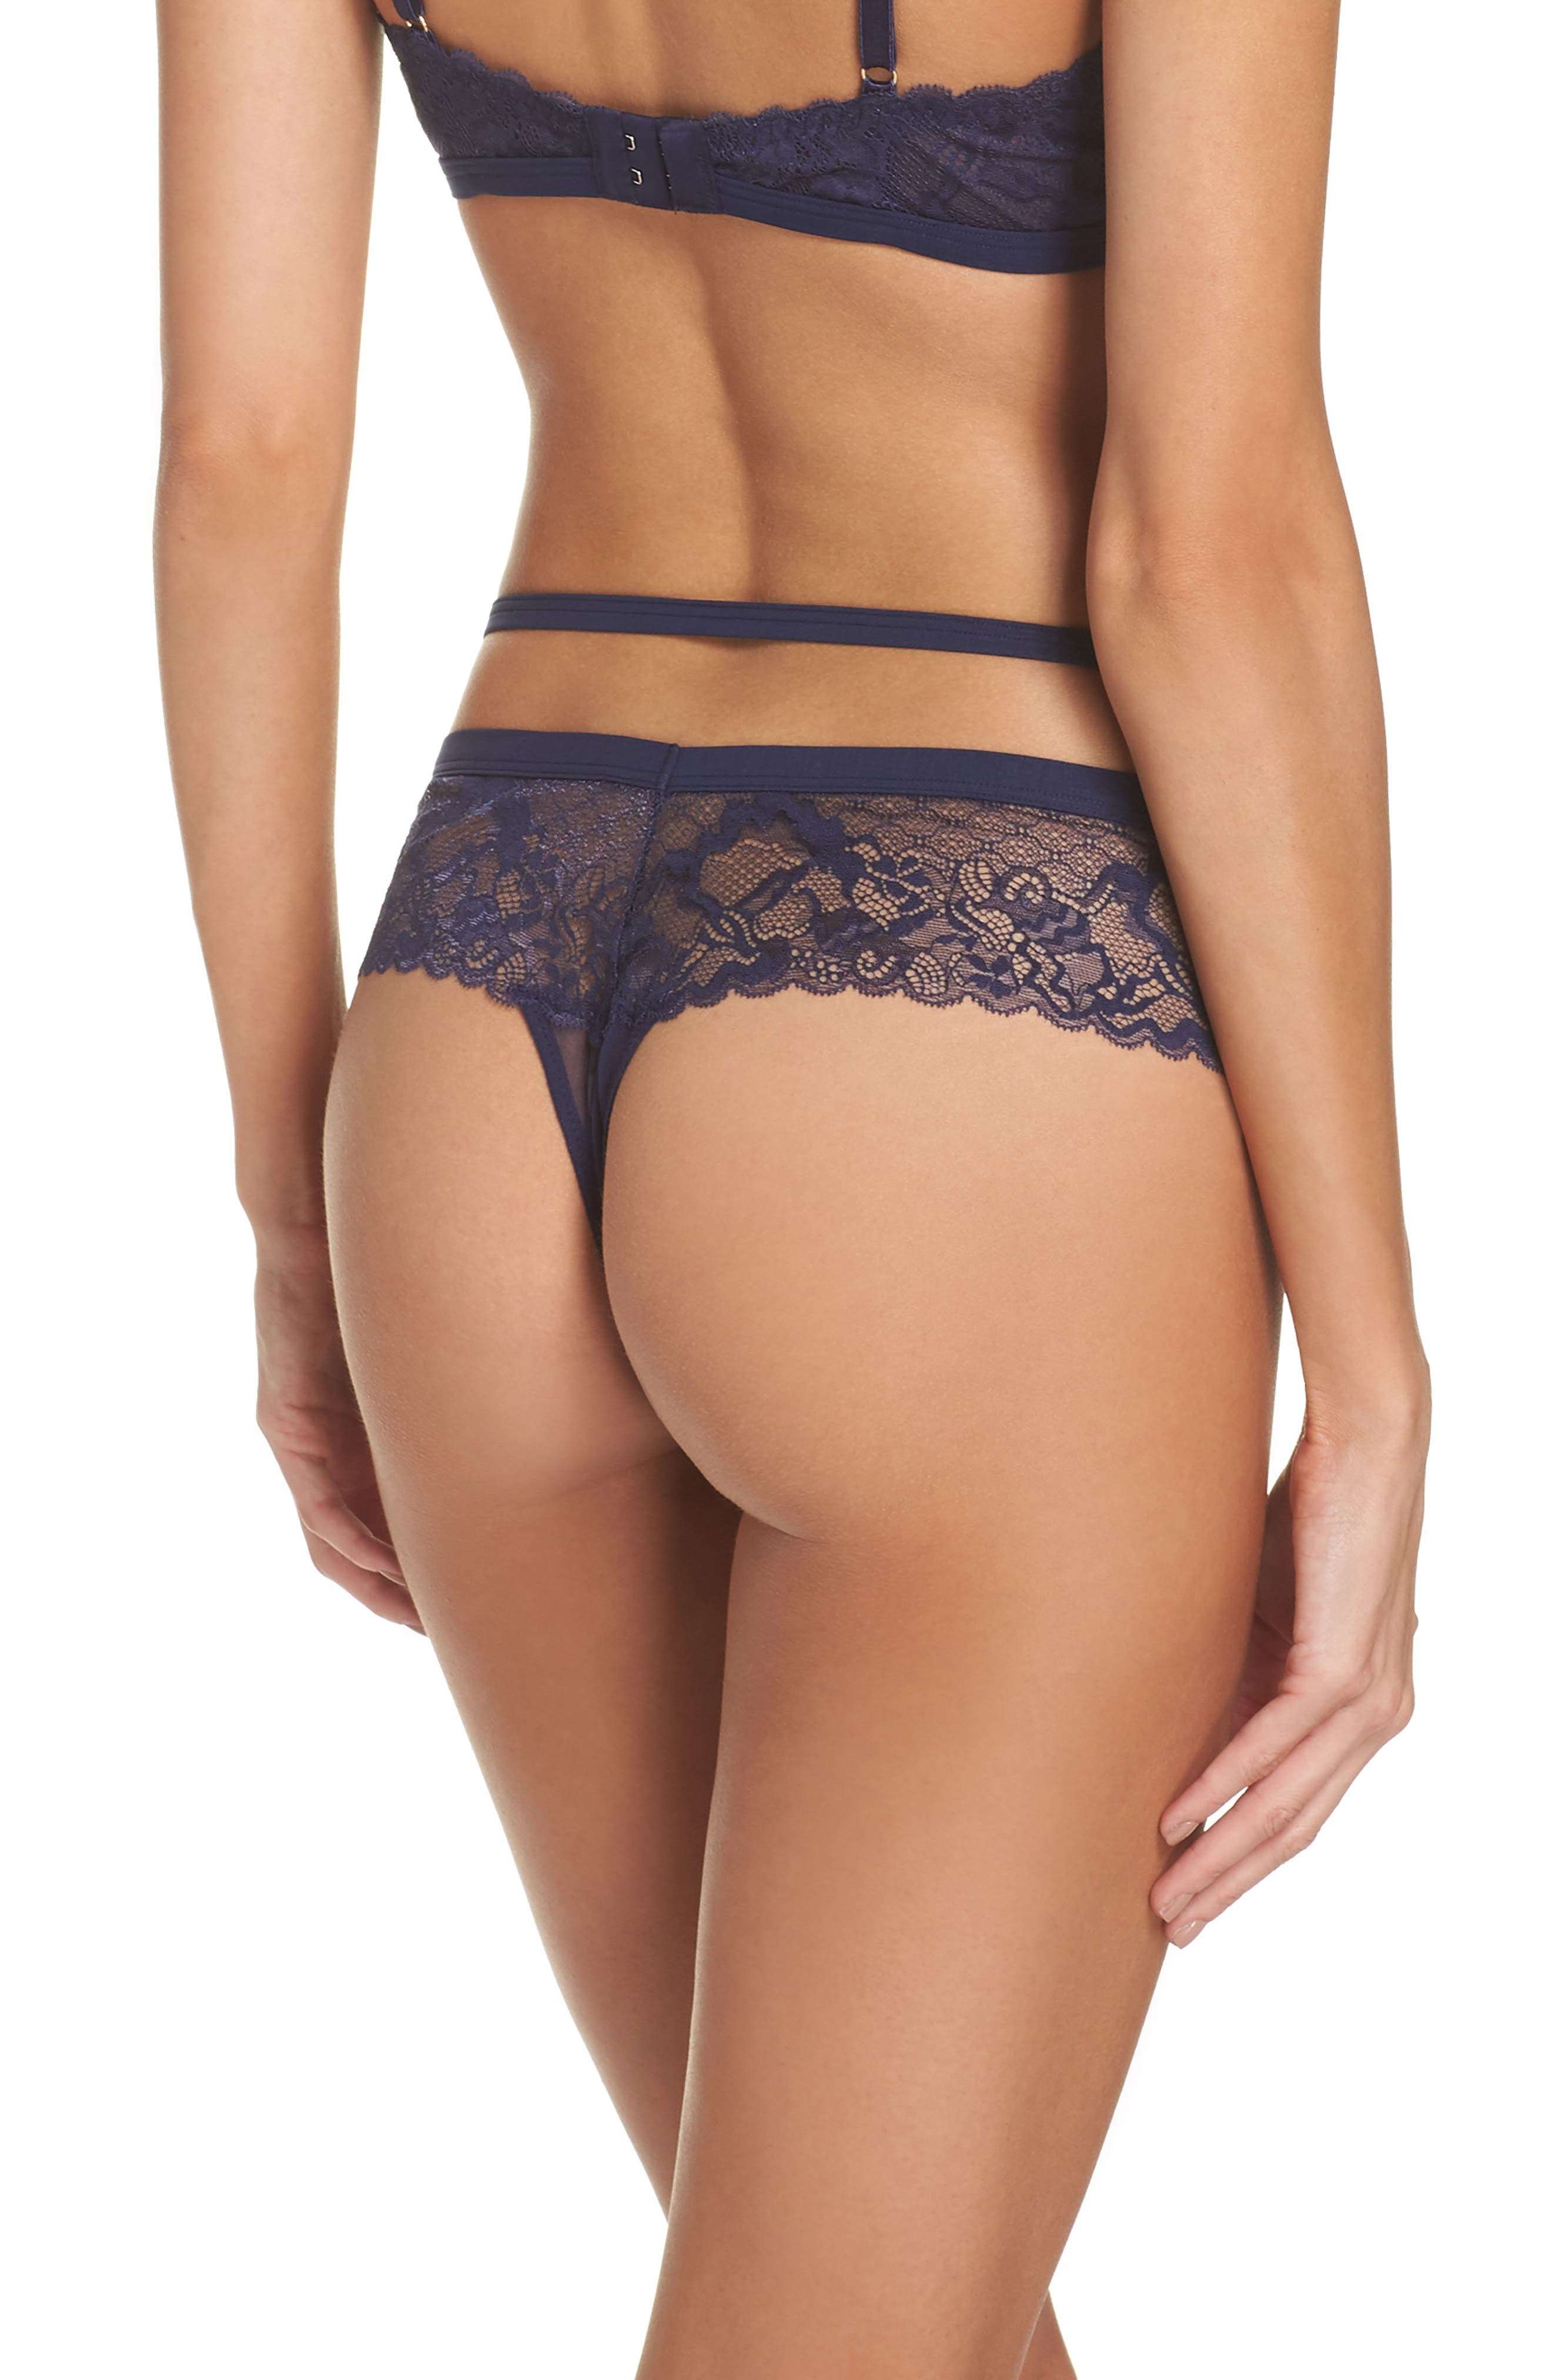 Addiction Nouvelle Rock Candy Tanga Thong,                             Alternate thumbnail 2, color,                             NAVY